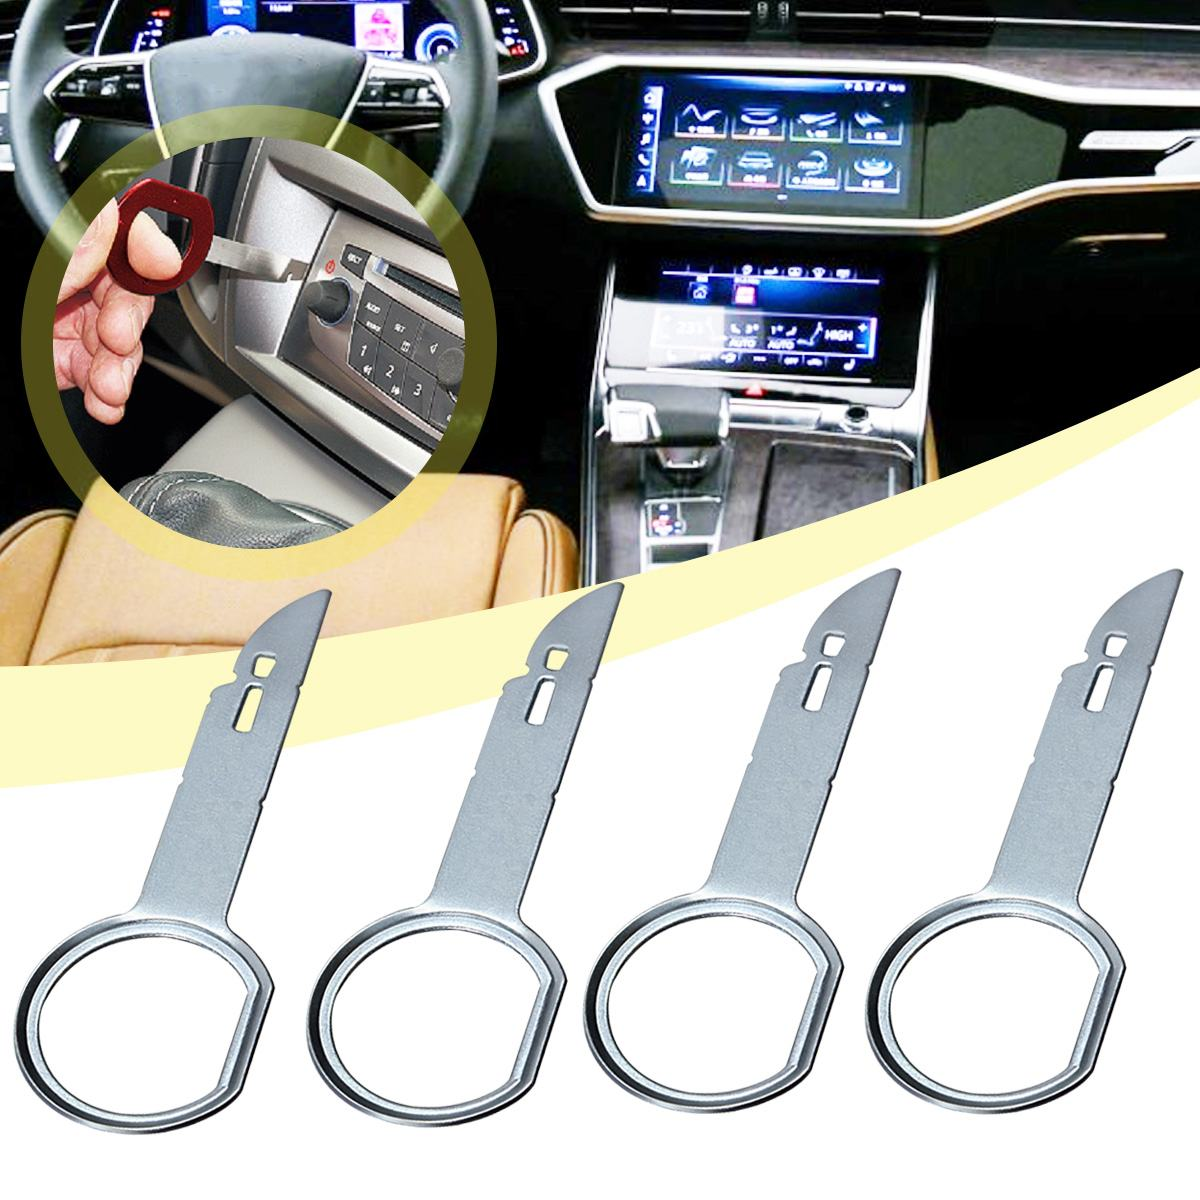 2PCS 4pcs Useful Practical Radio Stereo Release Removal Install Tool Key Installation For VW For Audi For Ford For Porsche